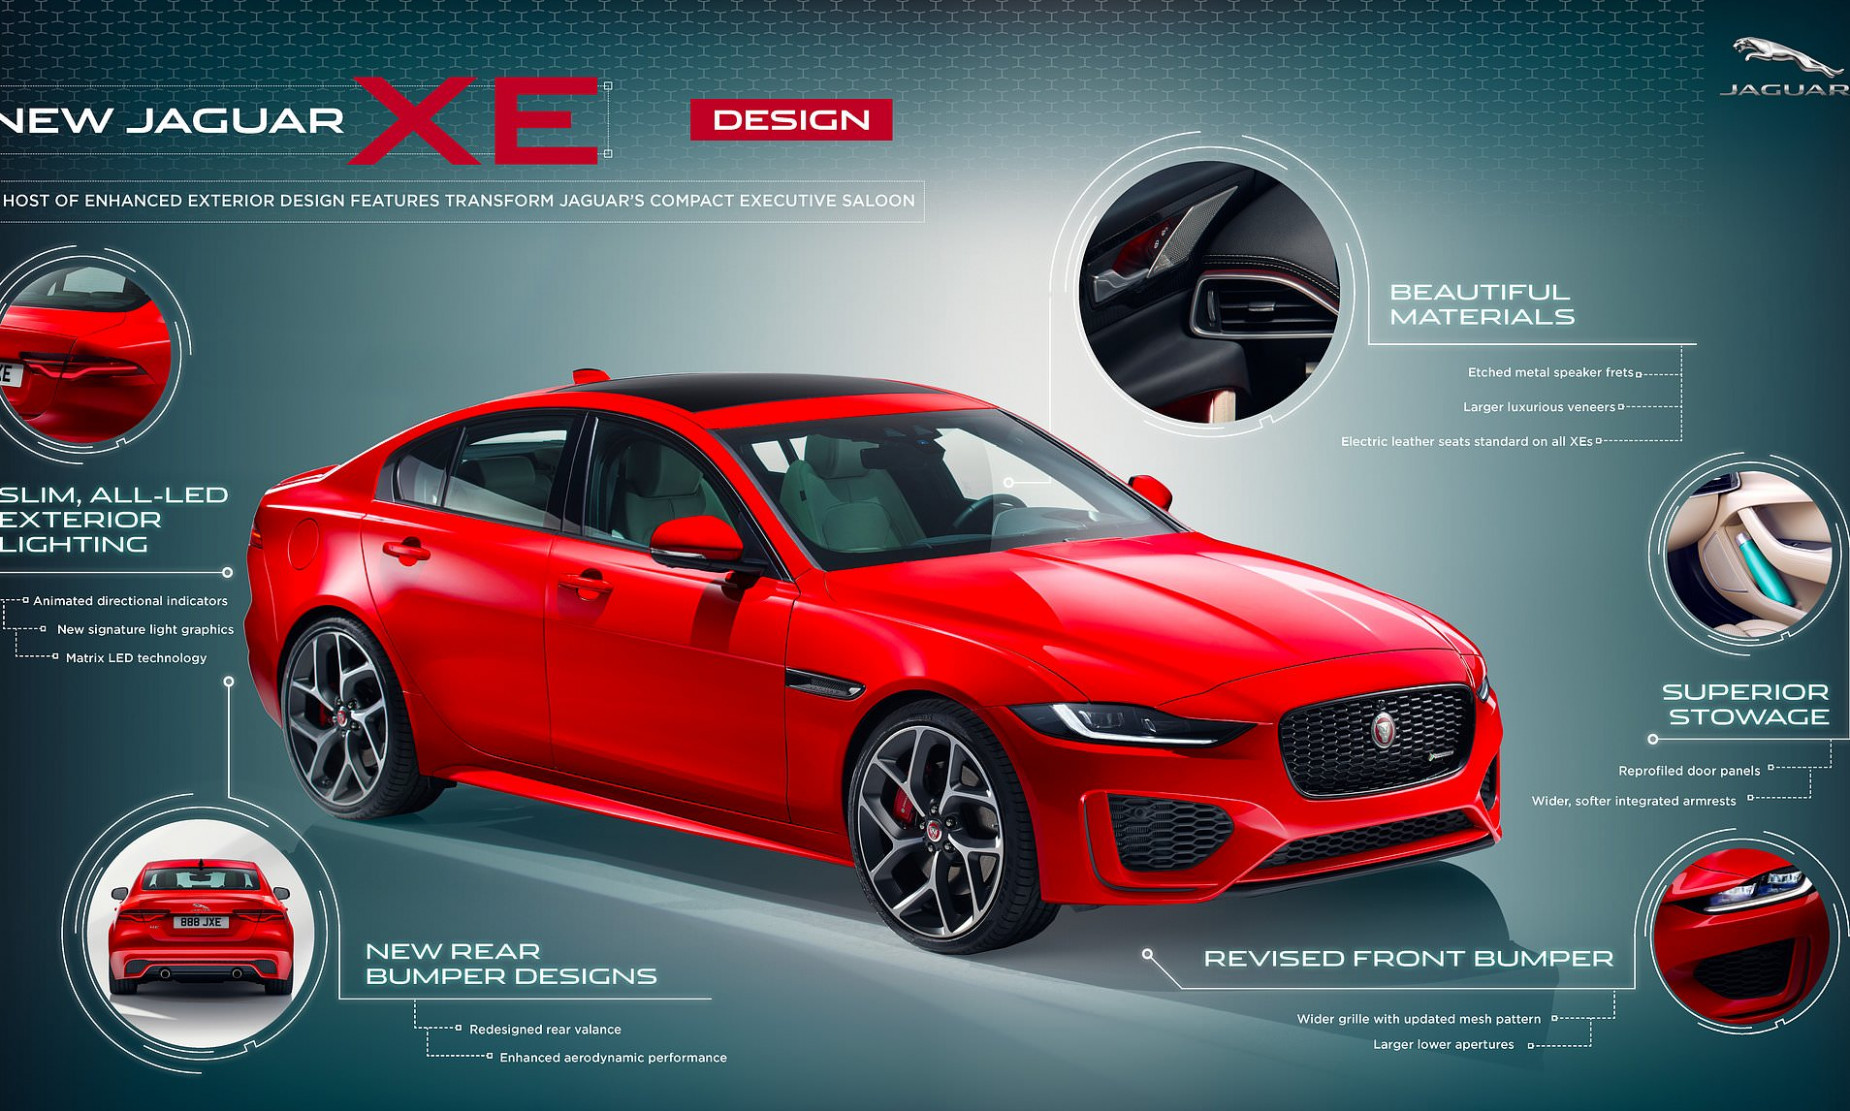 Performance and New Engine 2022 Jaguar Xe Review